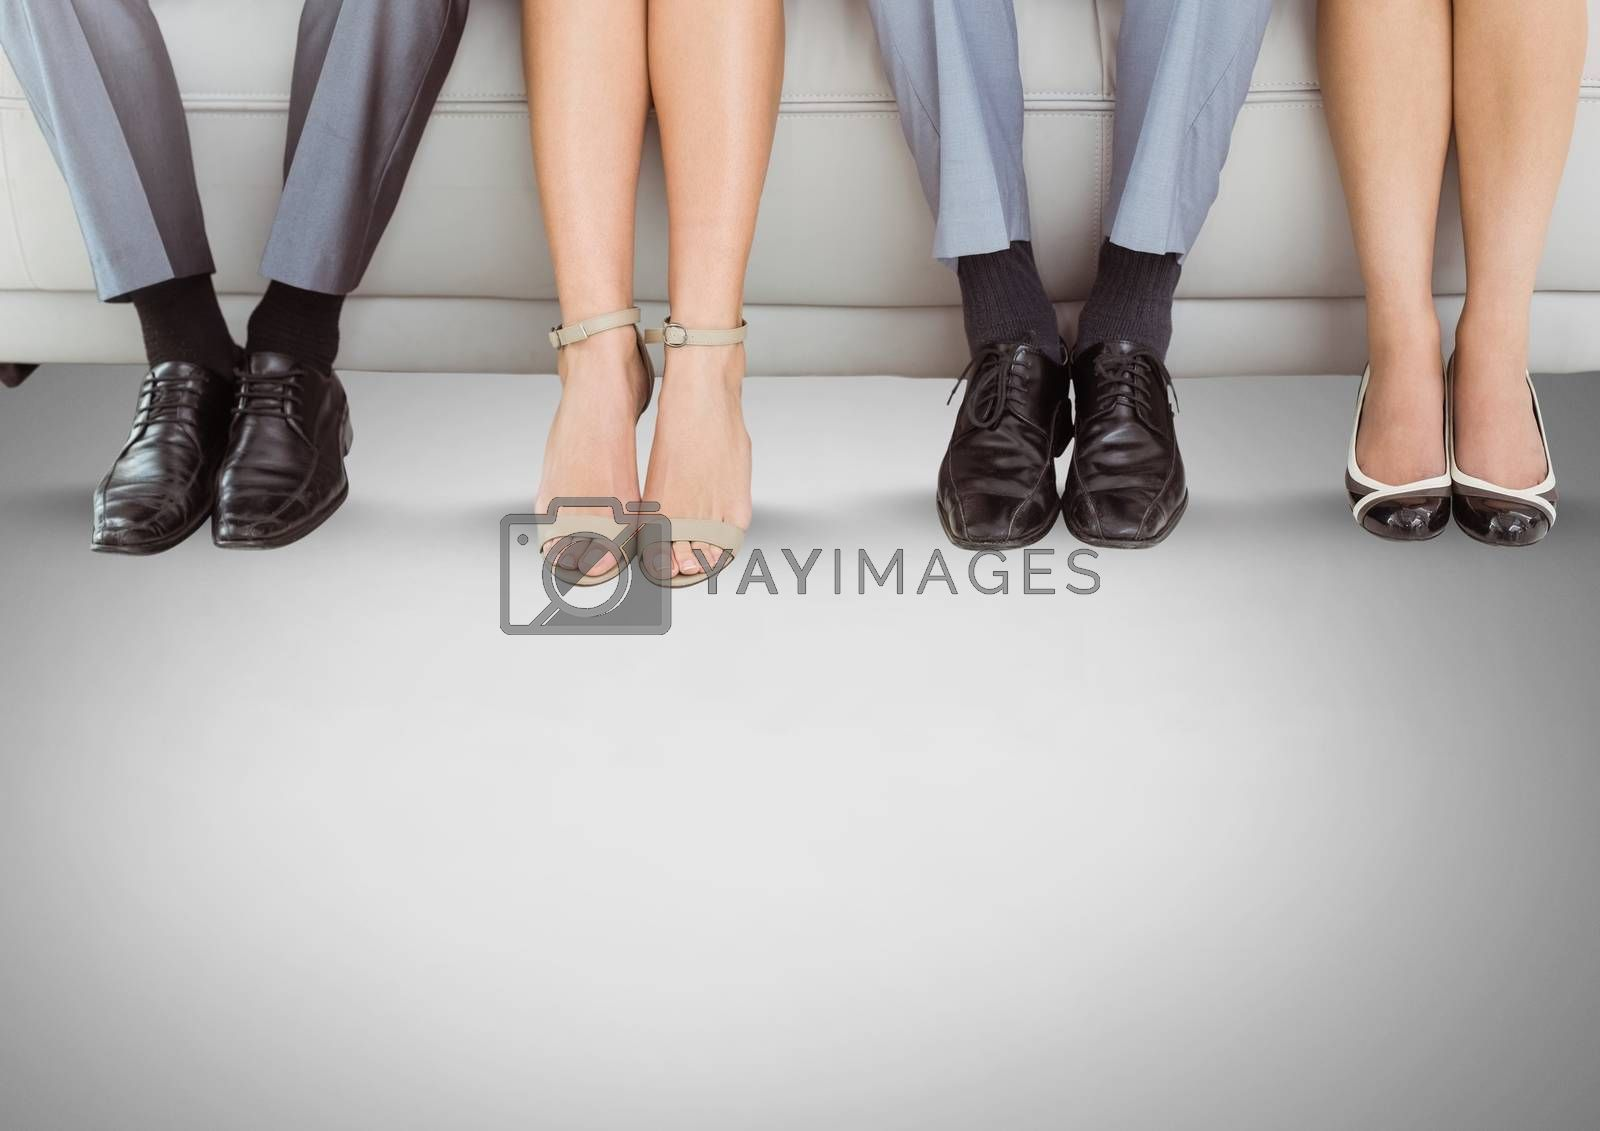 Digital composite of People legs and feet on couch